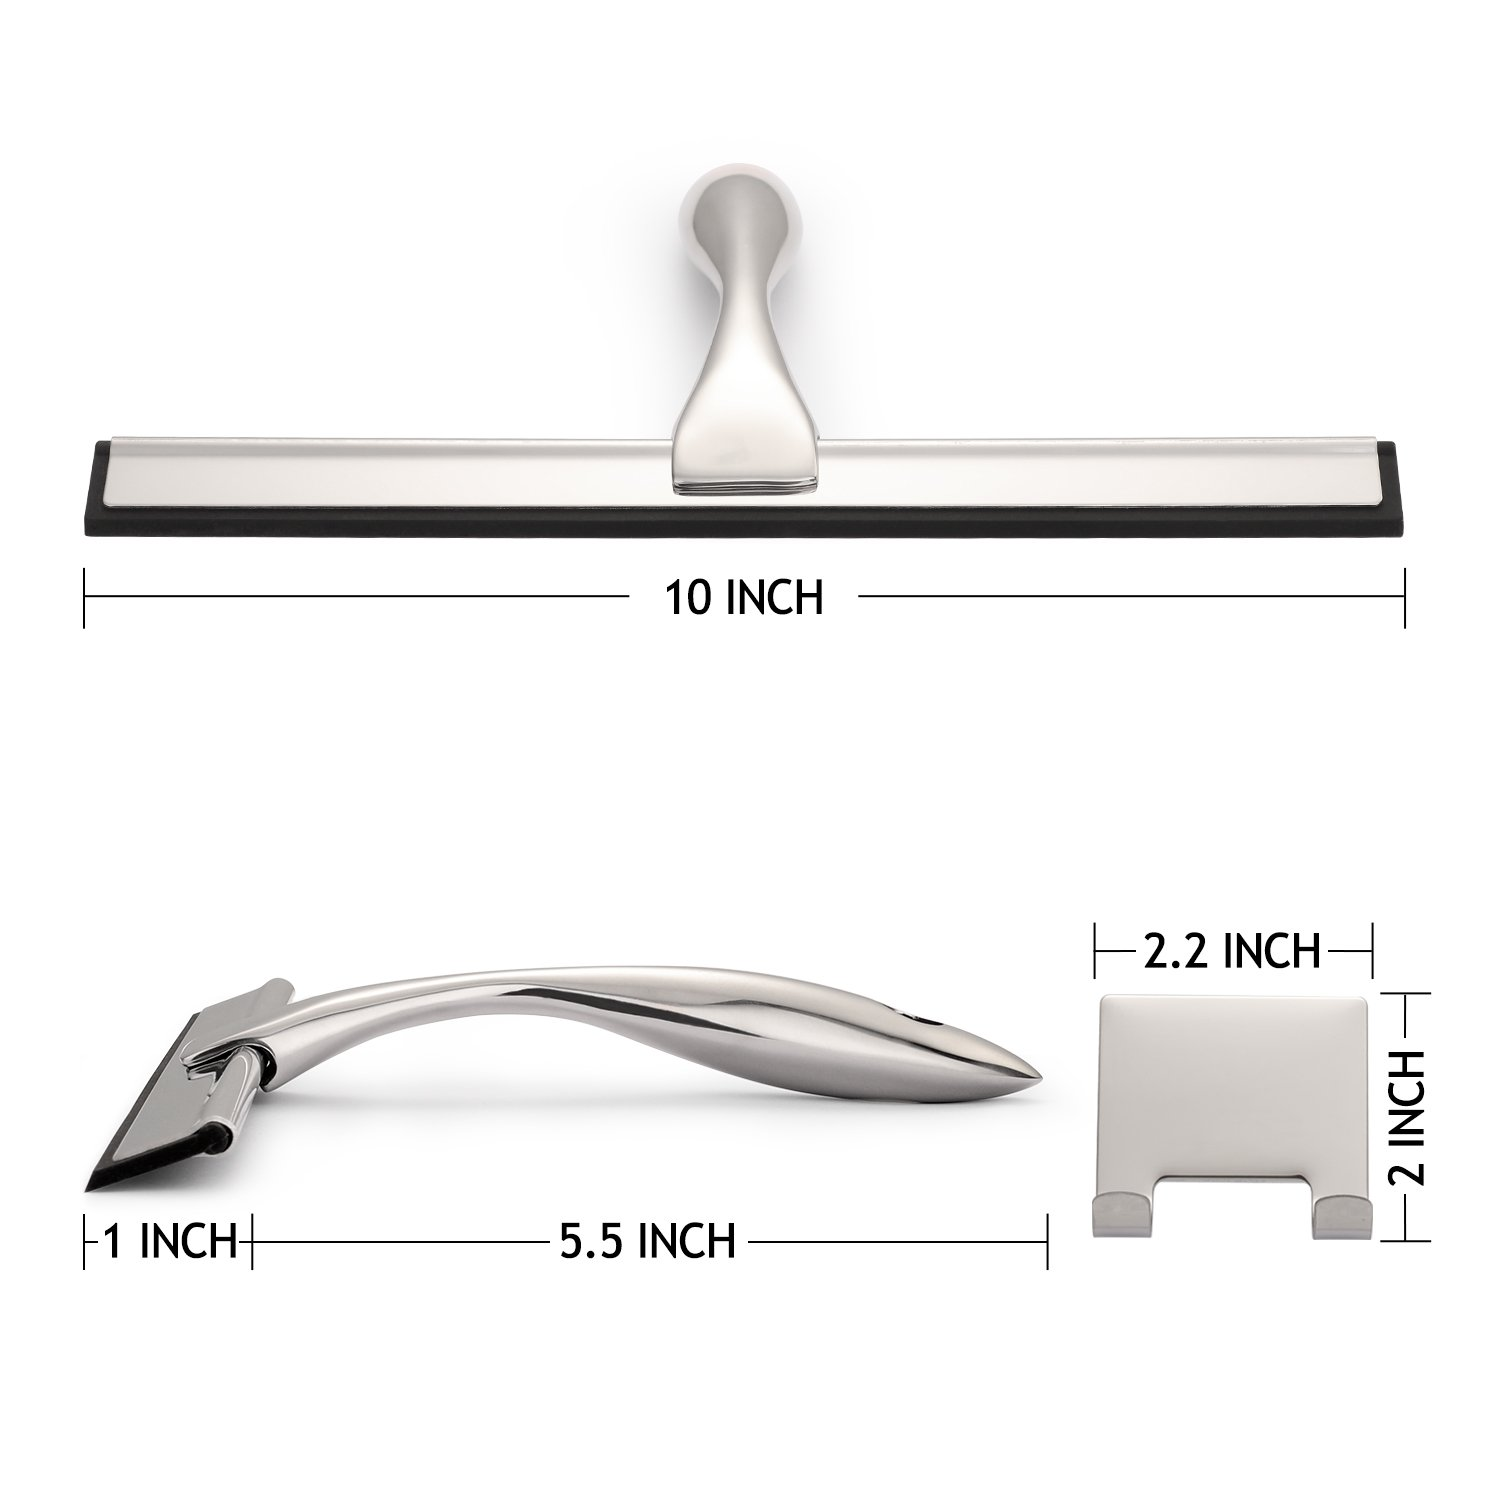 Baban Shower Squeegee With 2 Strong Adhesive Holder Hooks Stainless